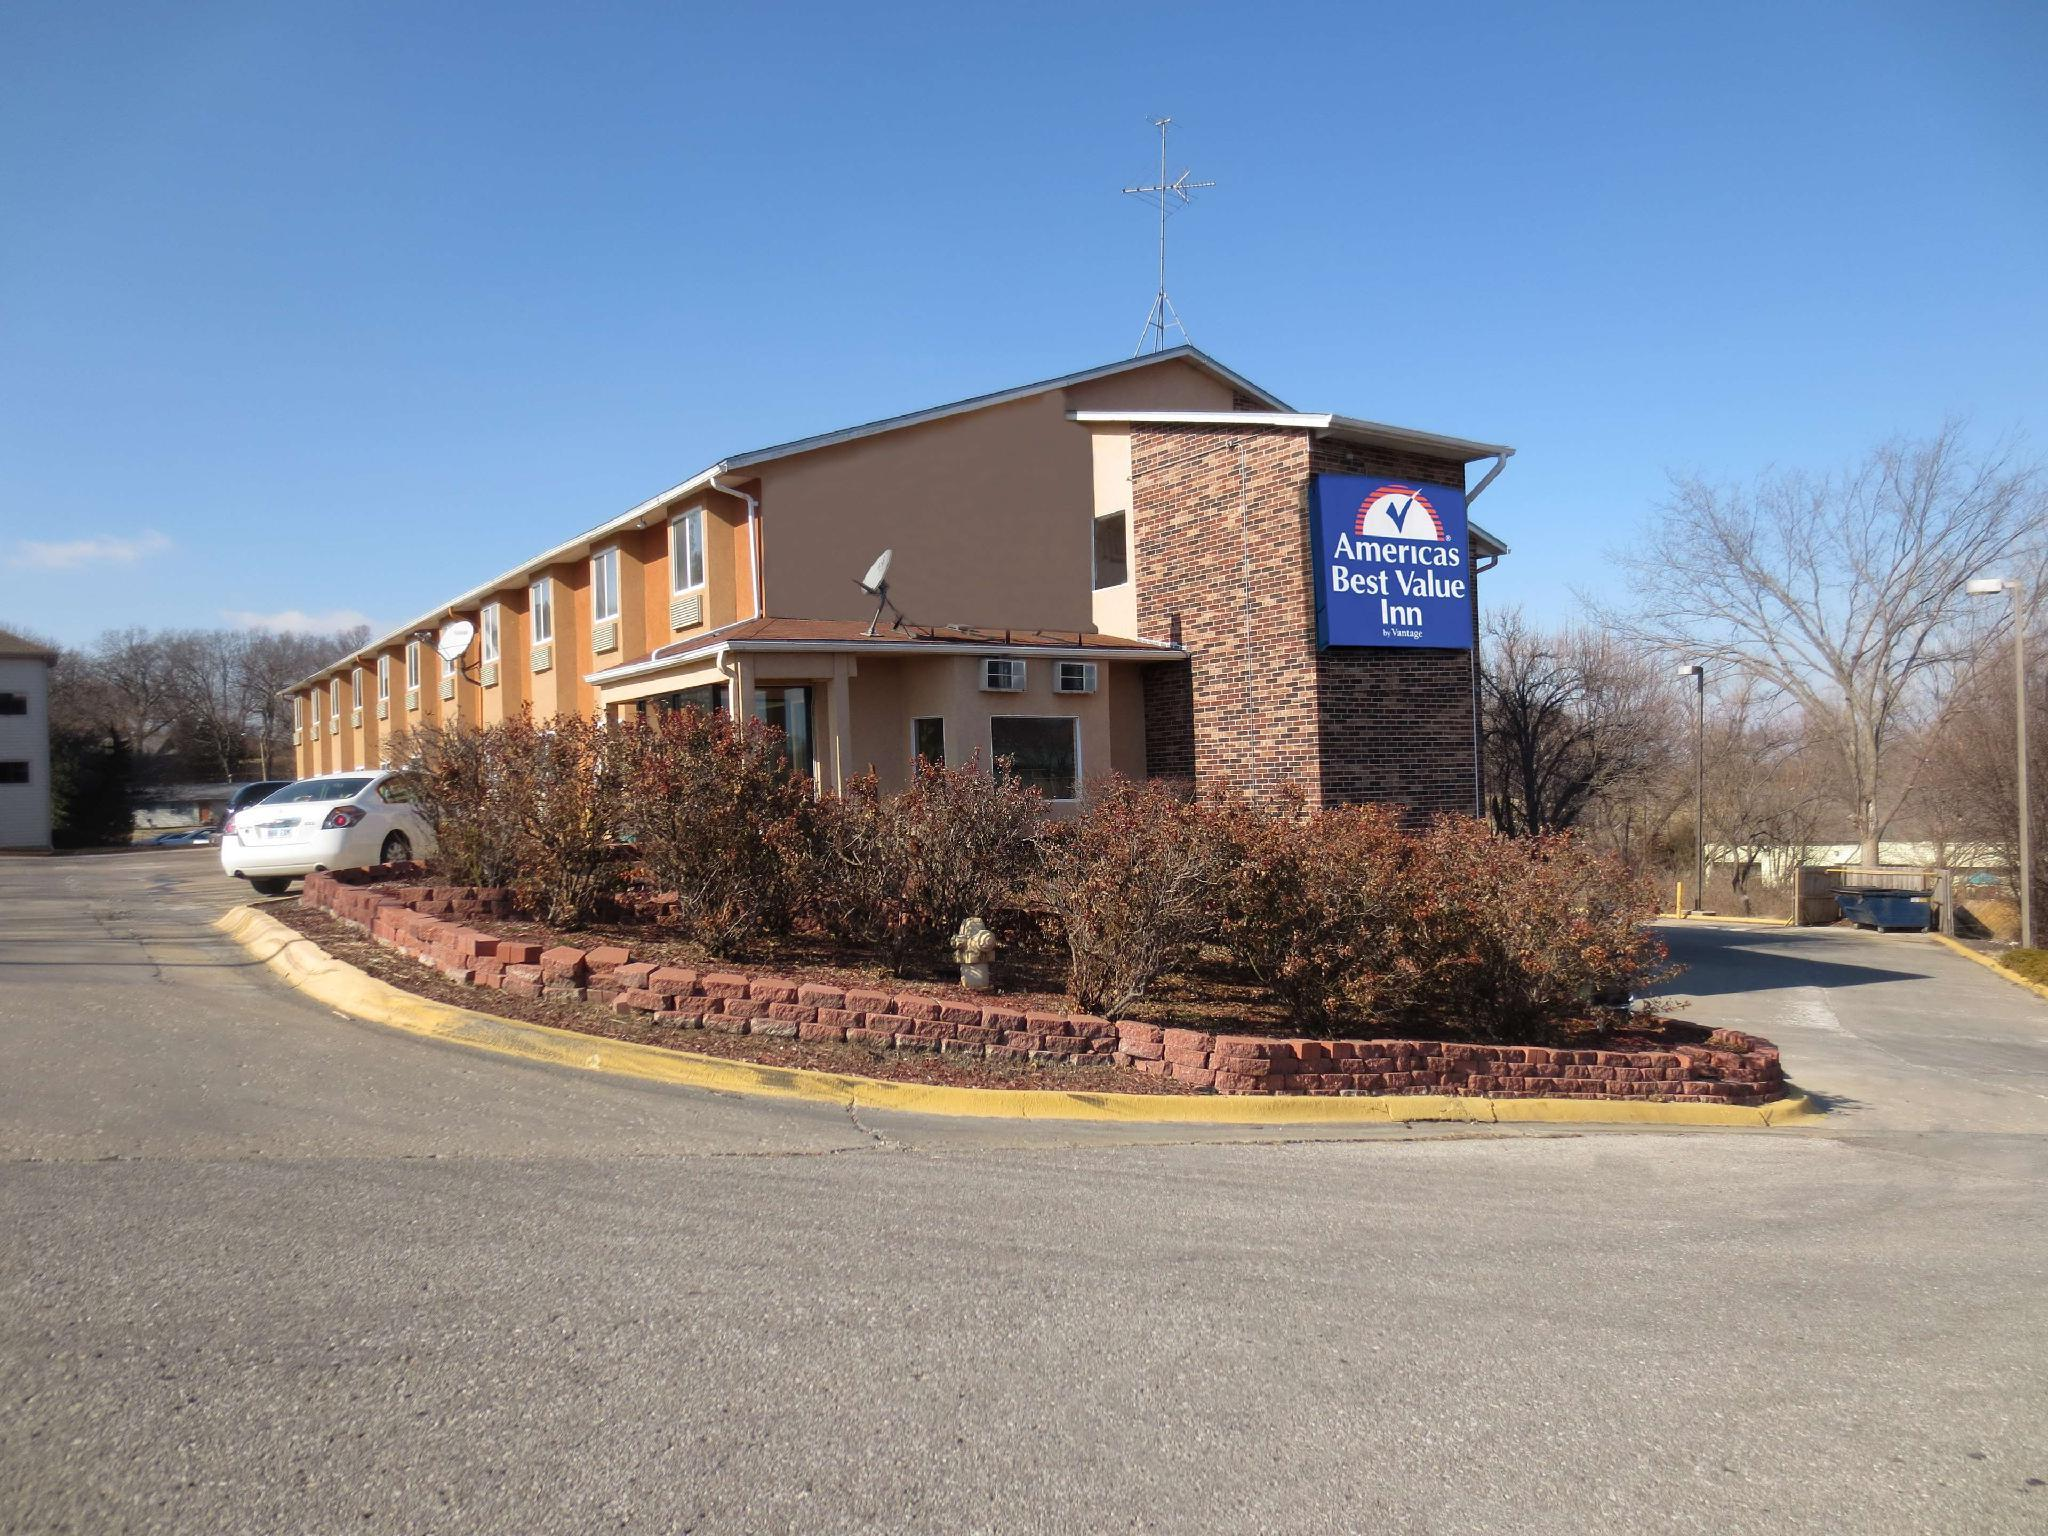 Americas Best Value Inn - Lawrence, KS